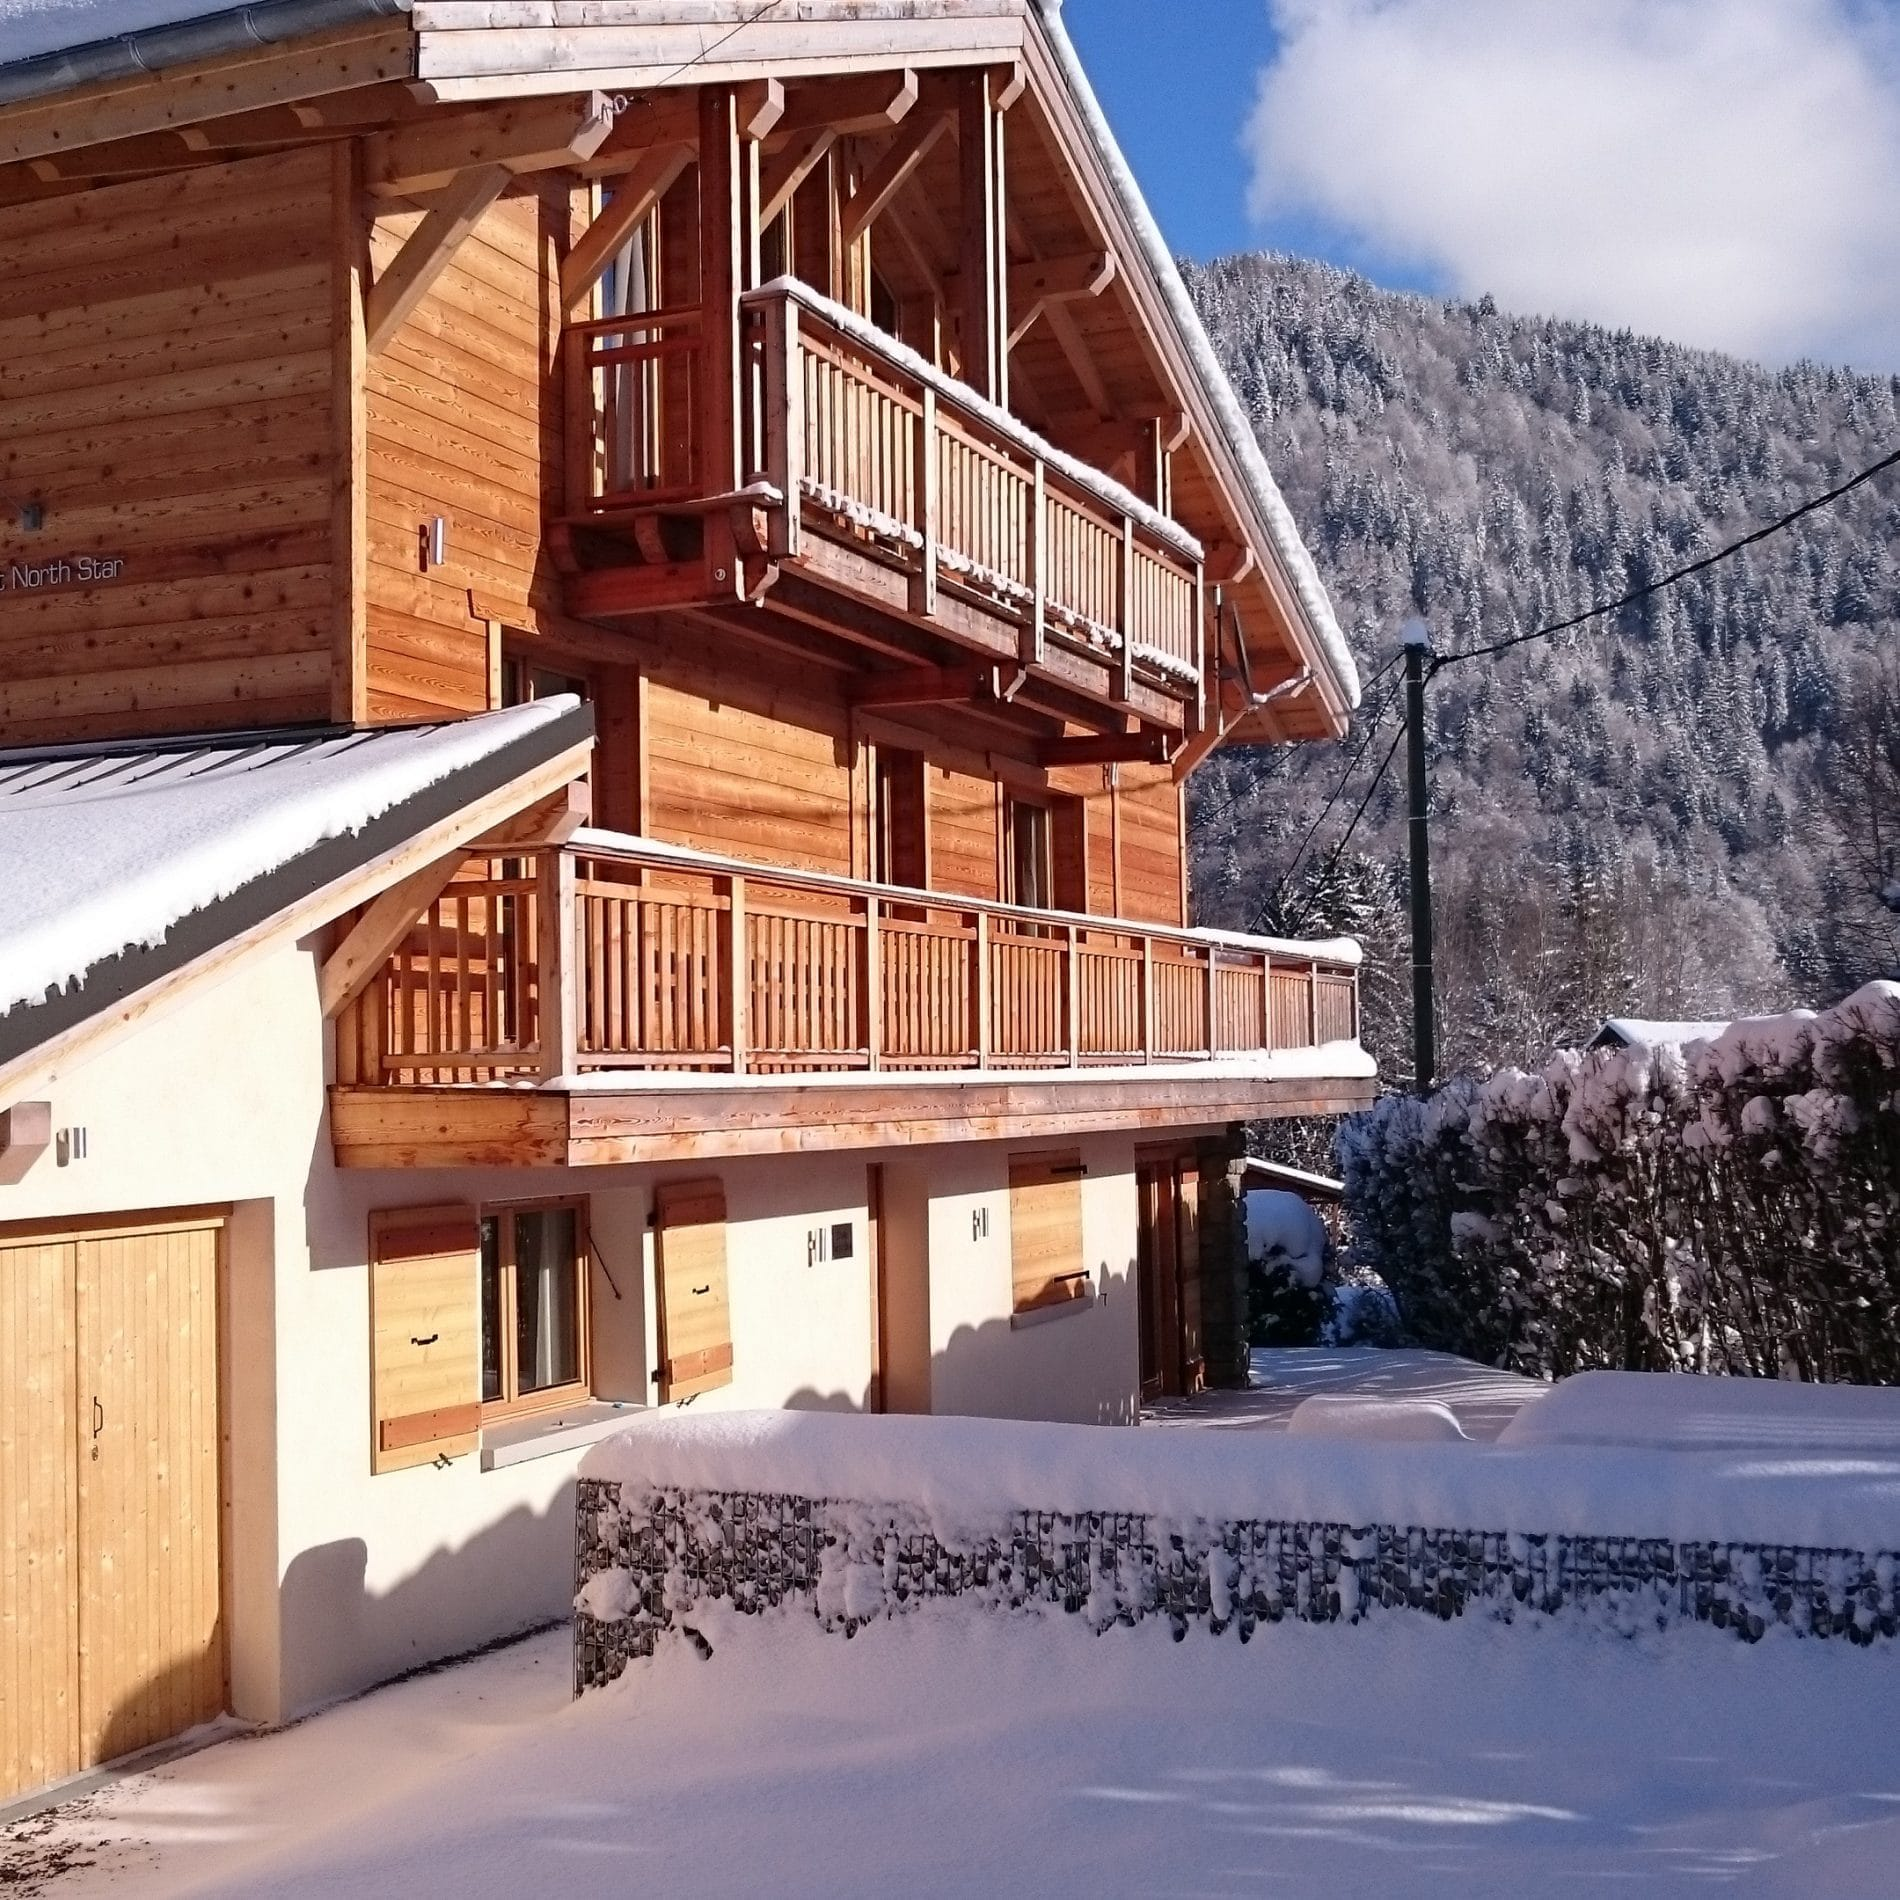 fd8758dacb We have handpicked the most stylish and luxurious chalets and apartments in  central Morzine to offer as holiday rentals.